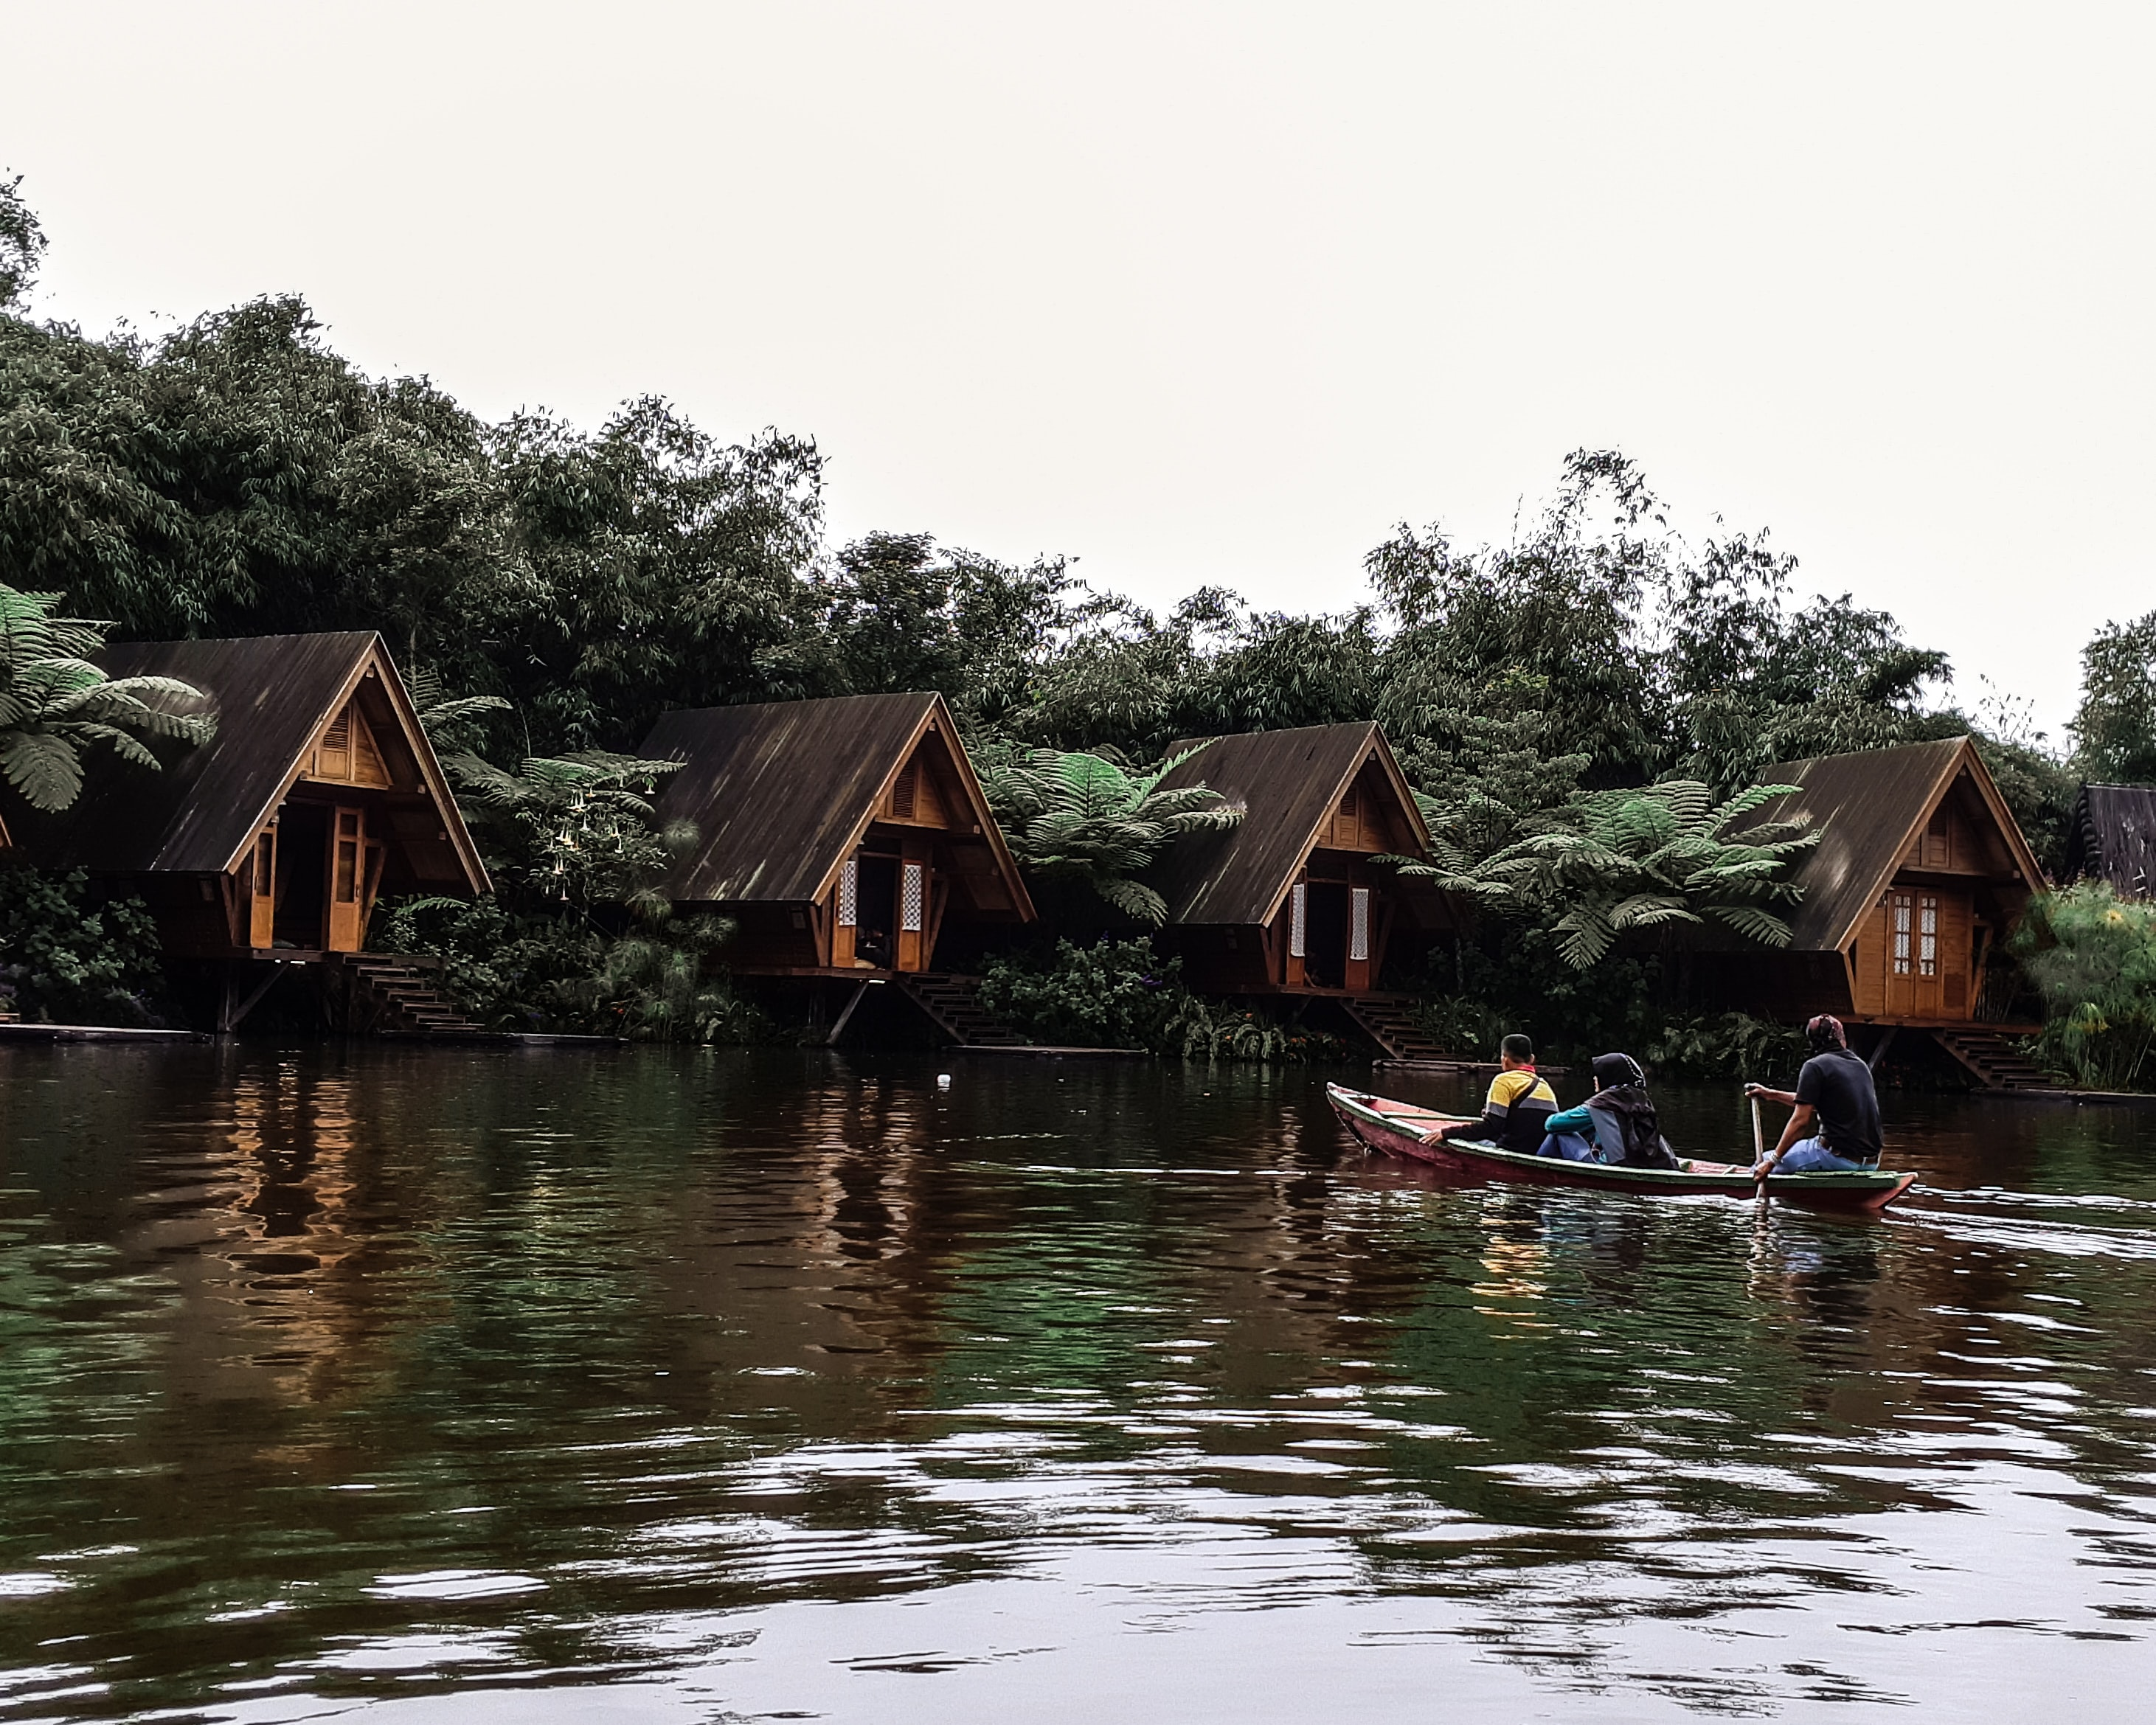 three men riding kayak on body of water leading to wooden cottages